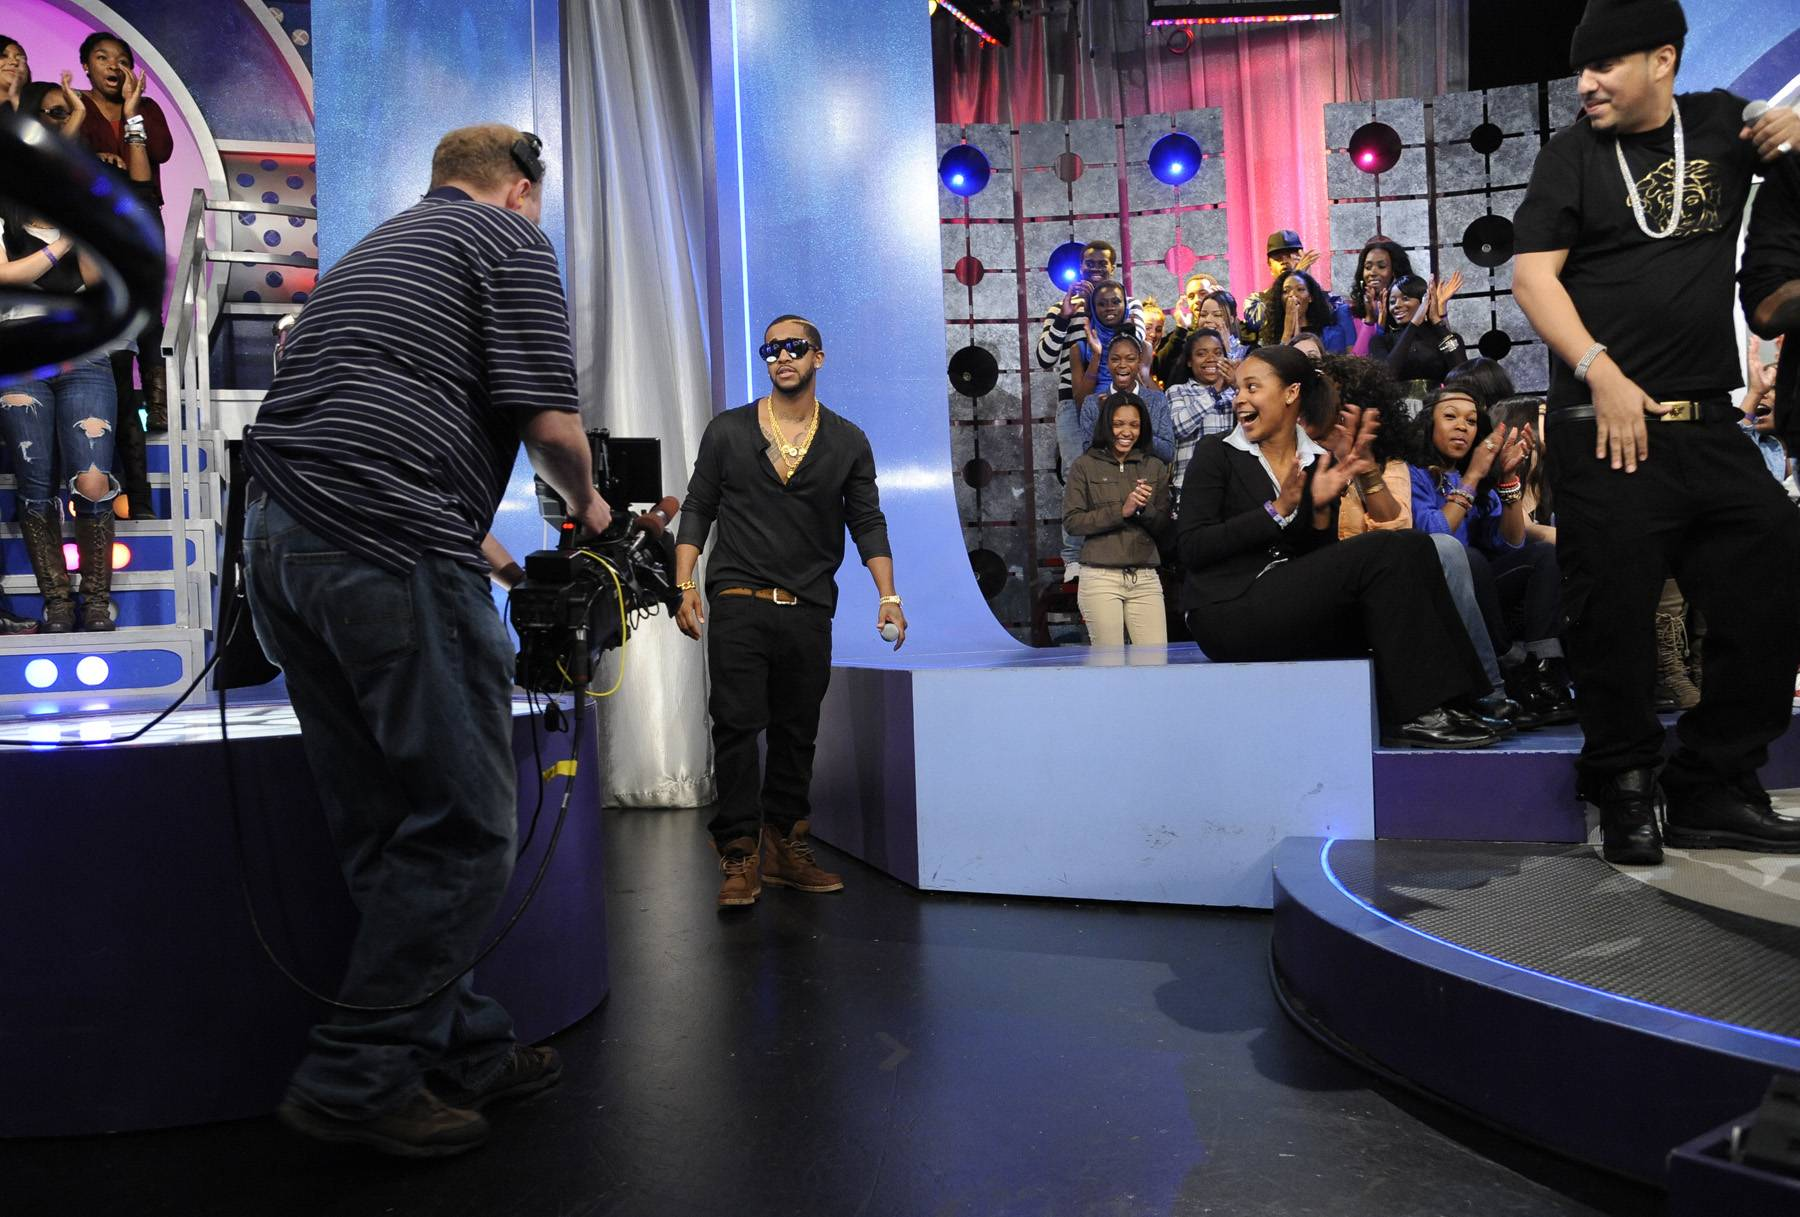 Right There - Omarion takes the stage at 106 & Park, May 2, 2012.(Photo: John Ricard/BET)